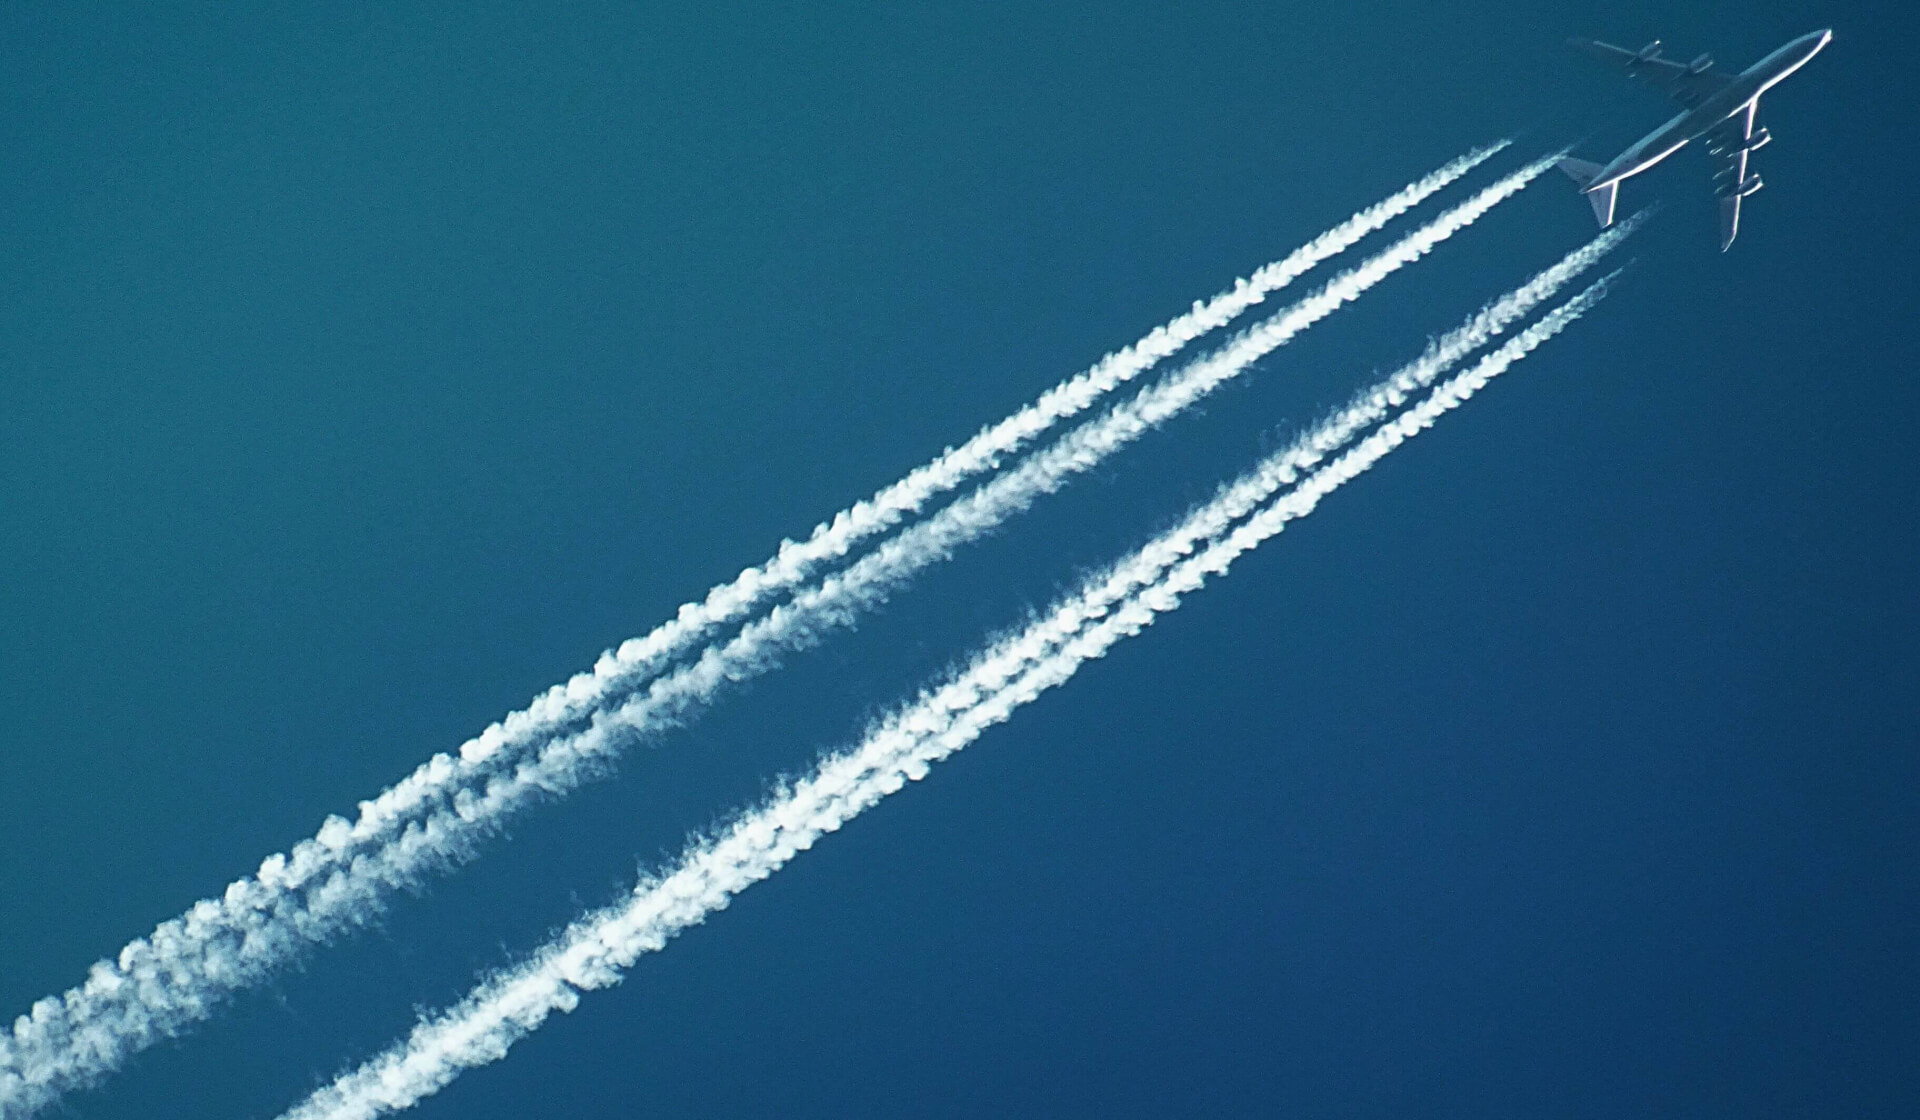 Plane in a clear blue sky with a long trail of smoky emissions behind it